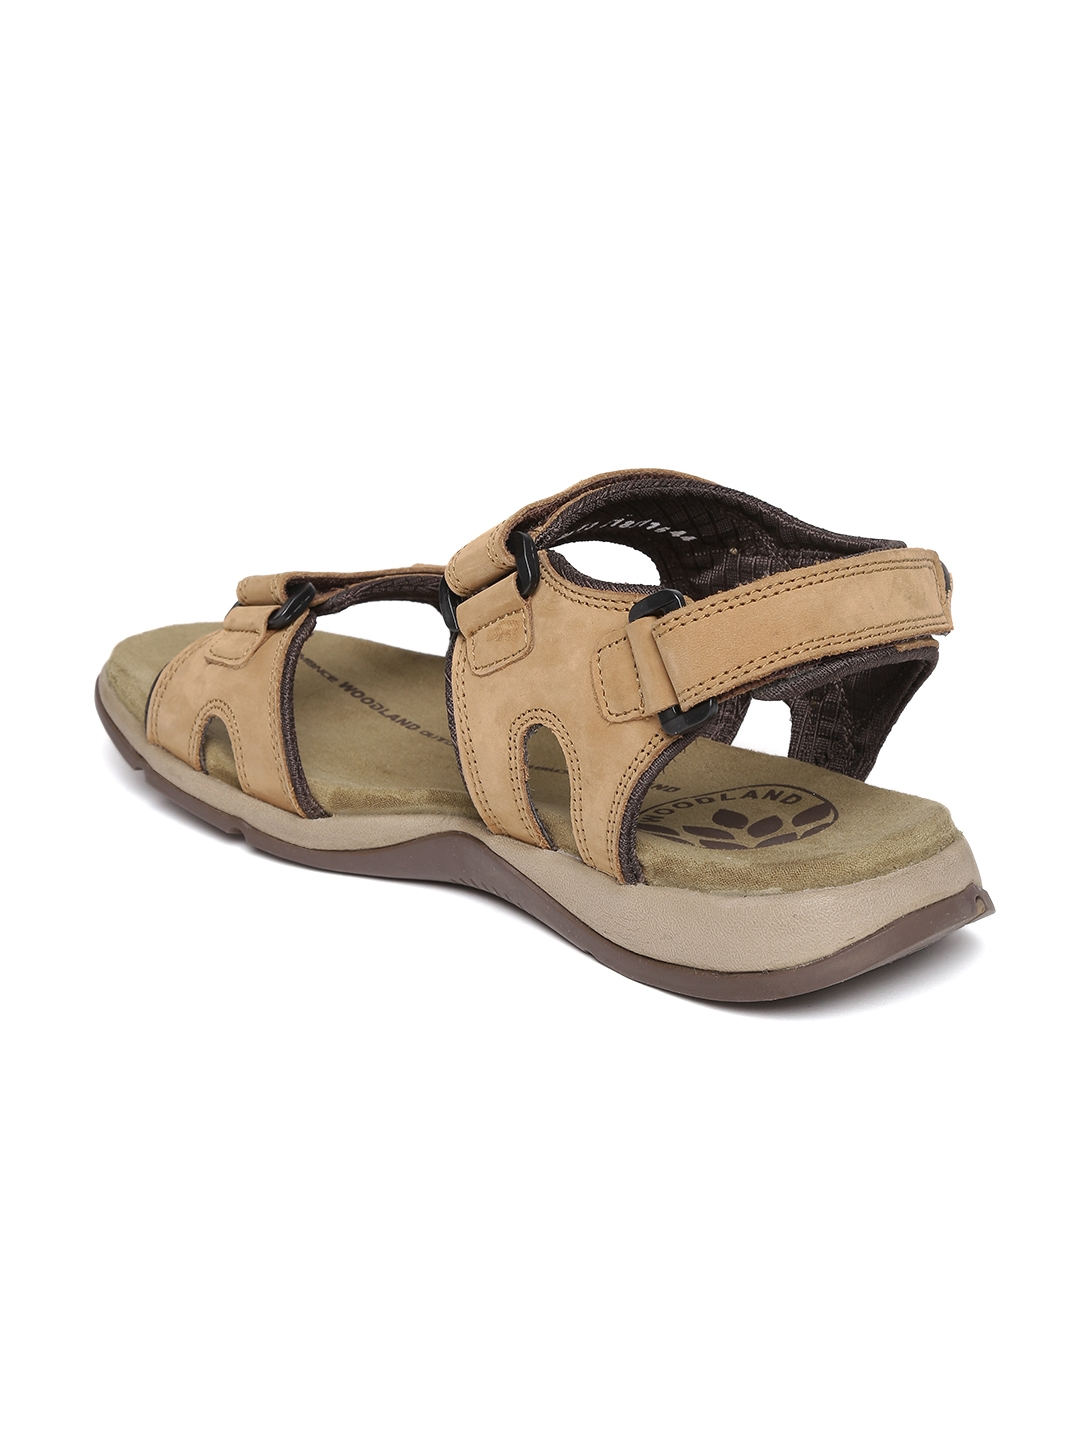 591dfd12ba9 Buy Woodland ProPlanet Men Beige Nubuck Leather Sandals - Sandals ...